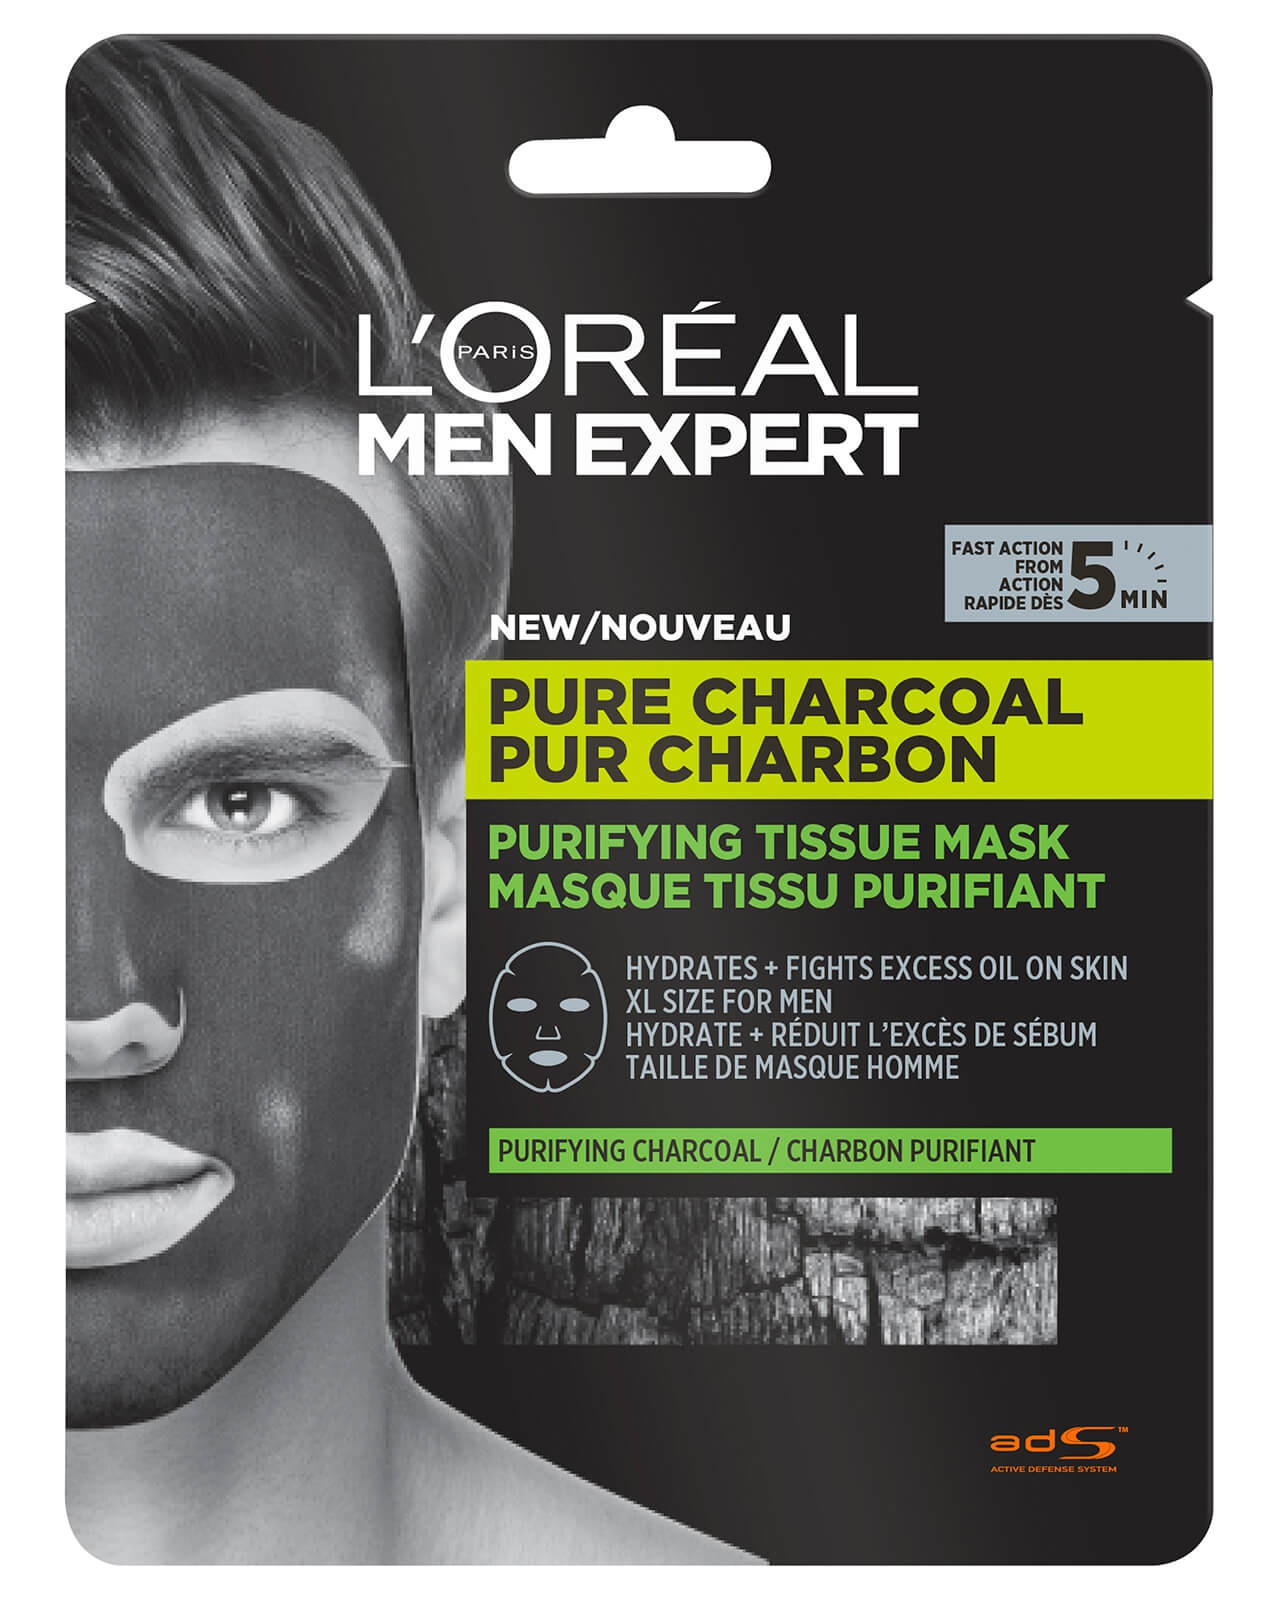 L'Oreal Men Expert Pure Charcoal Purifying Tissue Mask